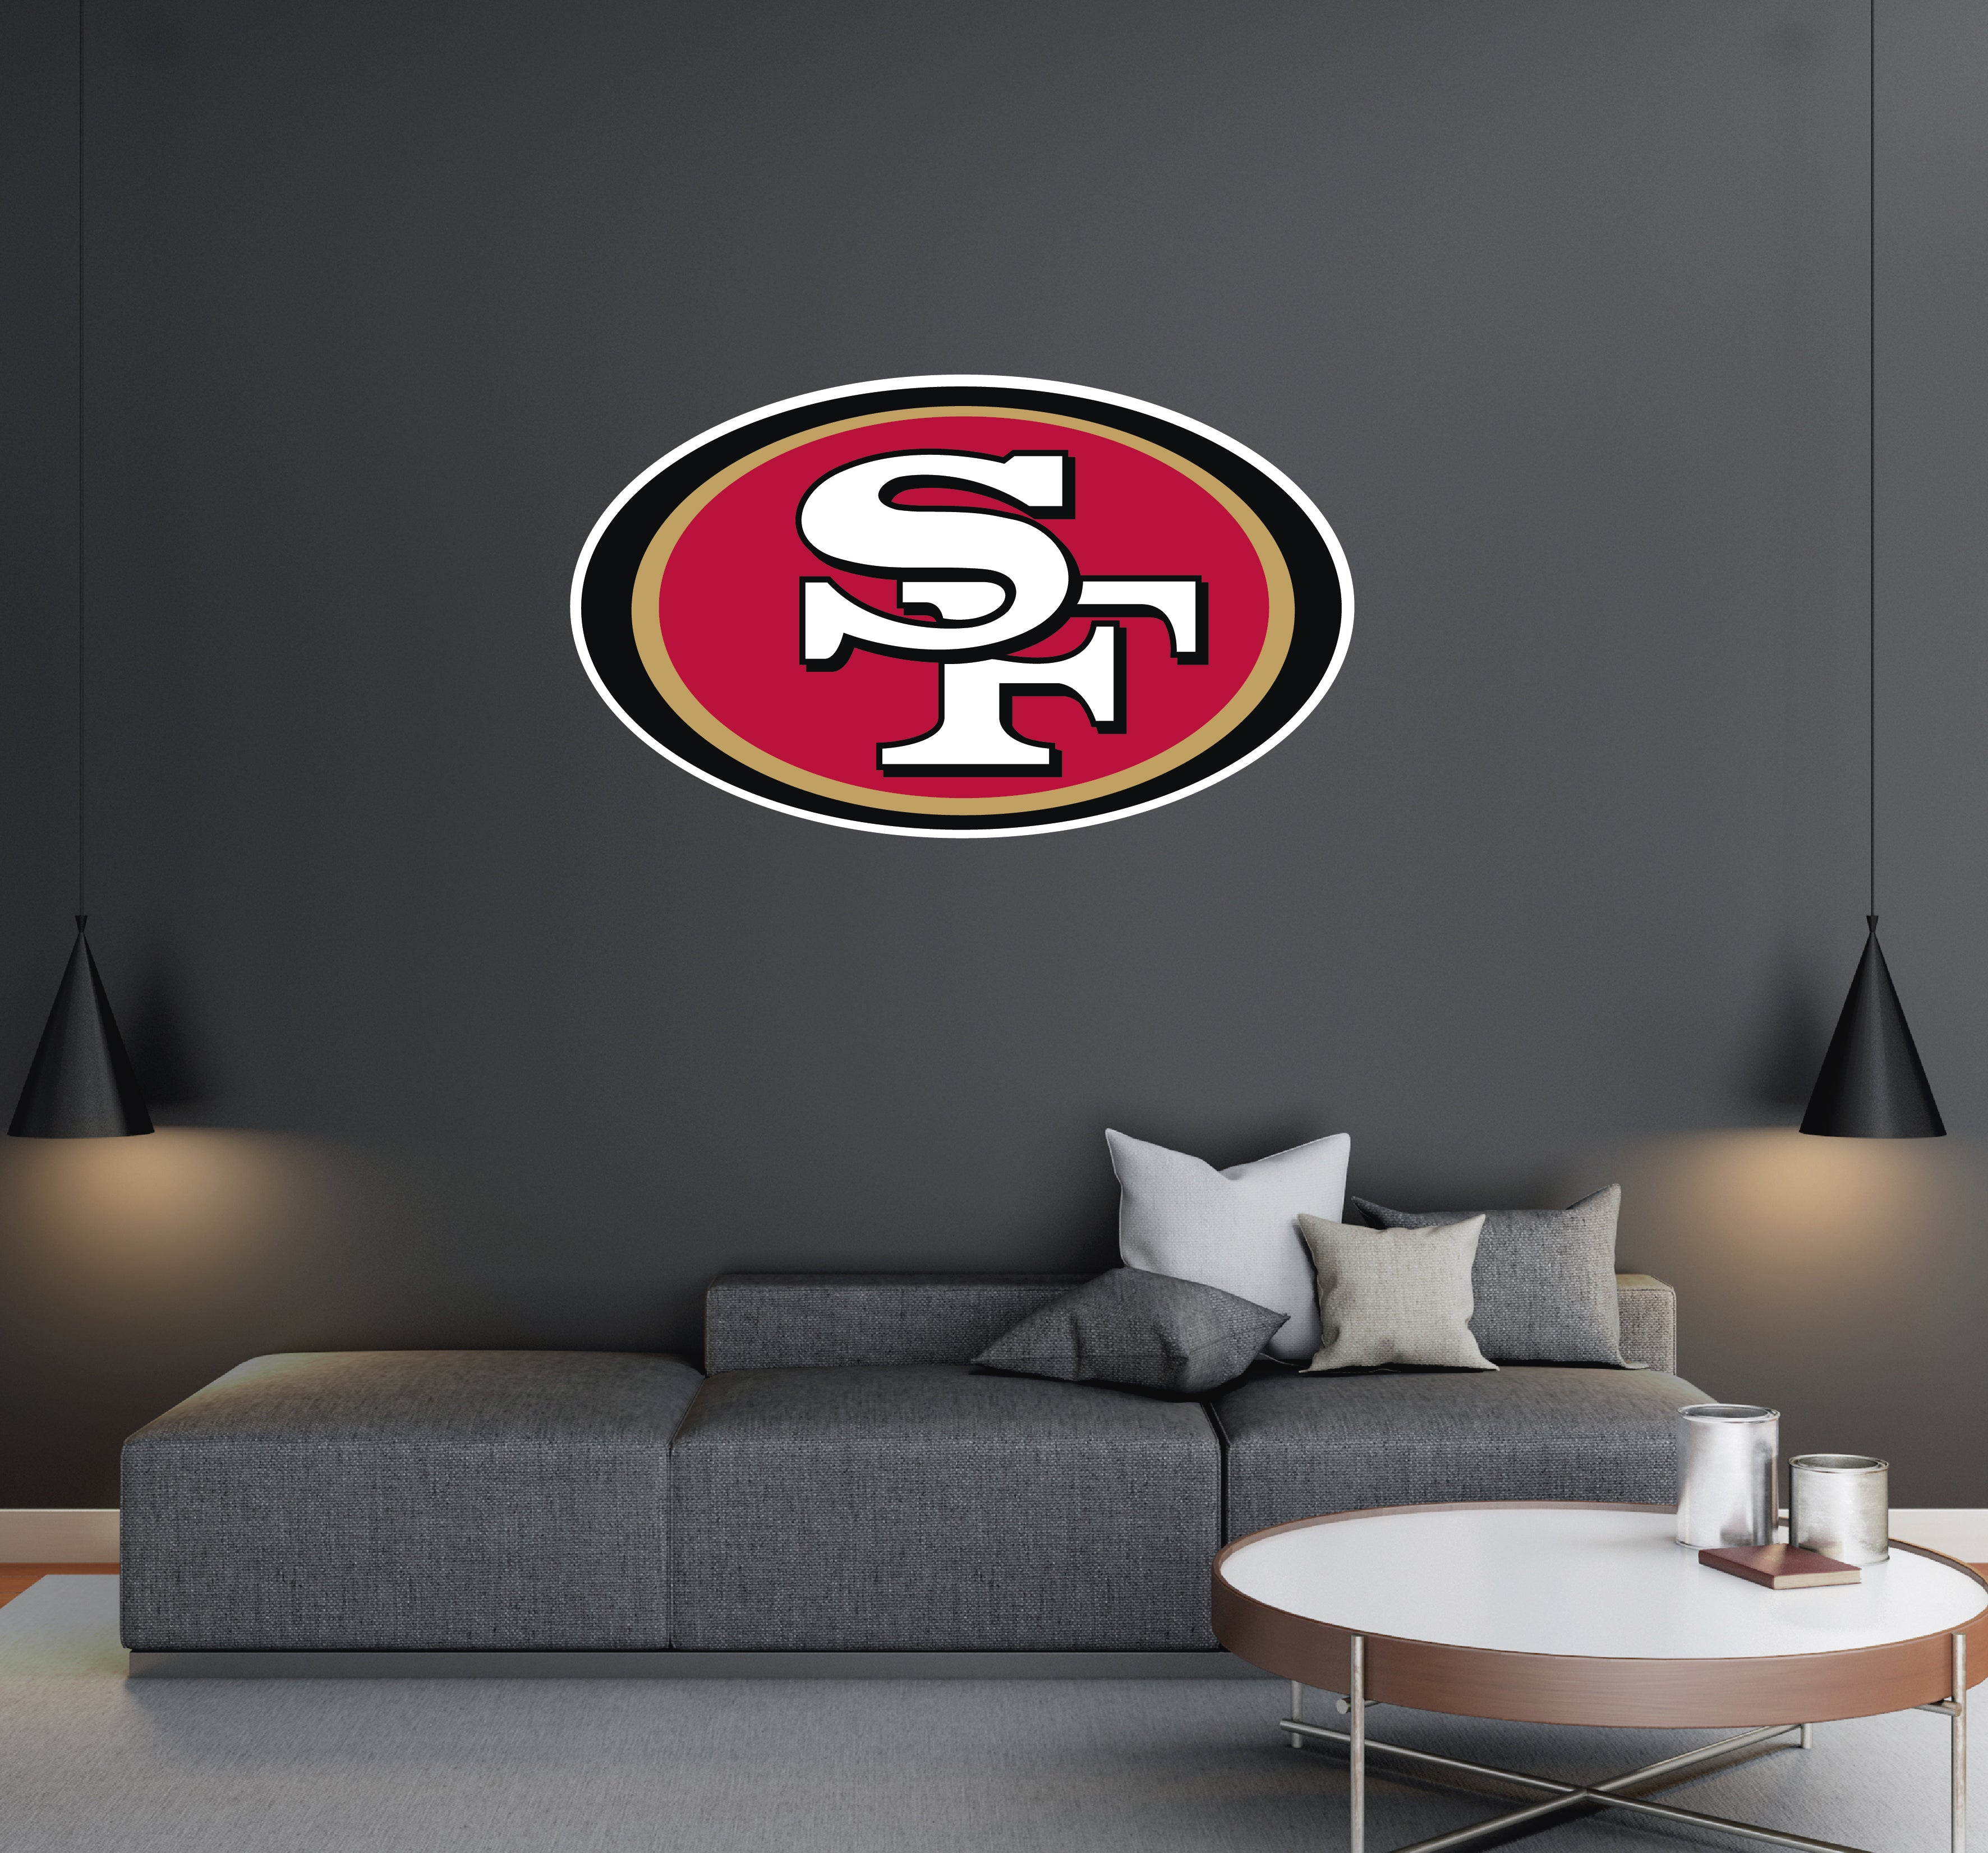 San Francisco 49ers - NFL Football Team Logo - Wall Decal Removable & Reusable For Home Bedroom